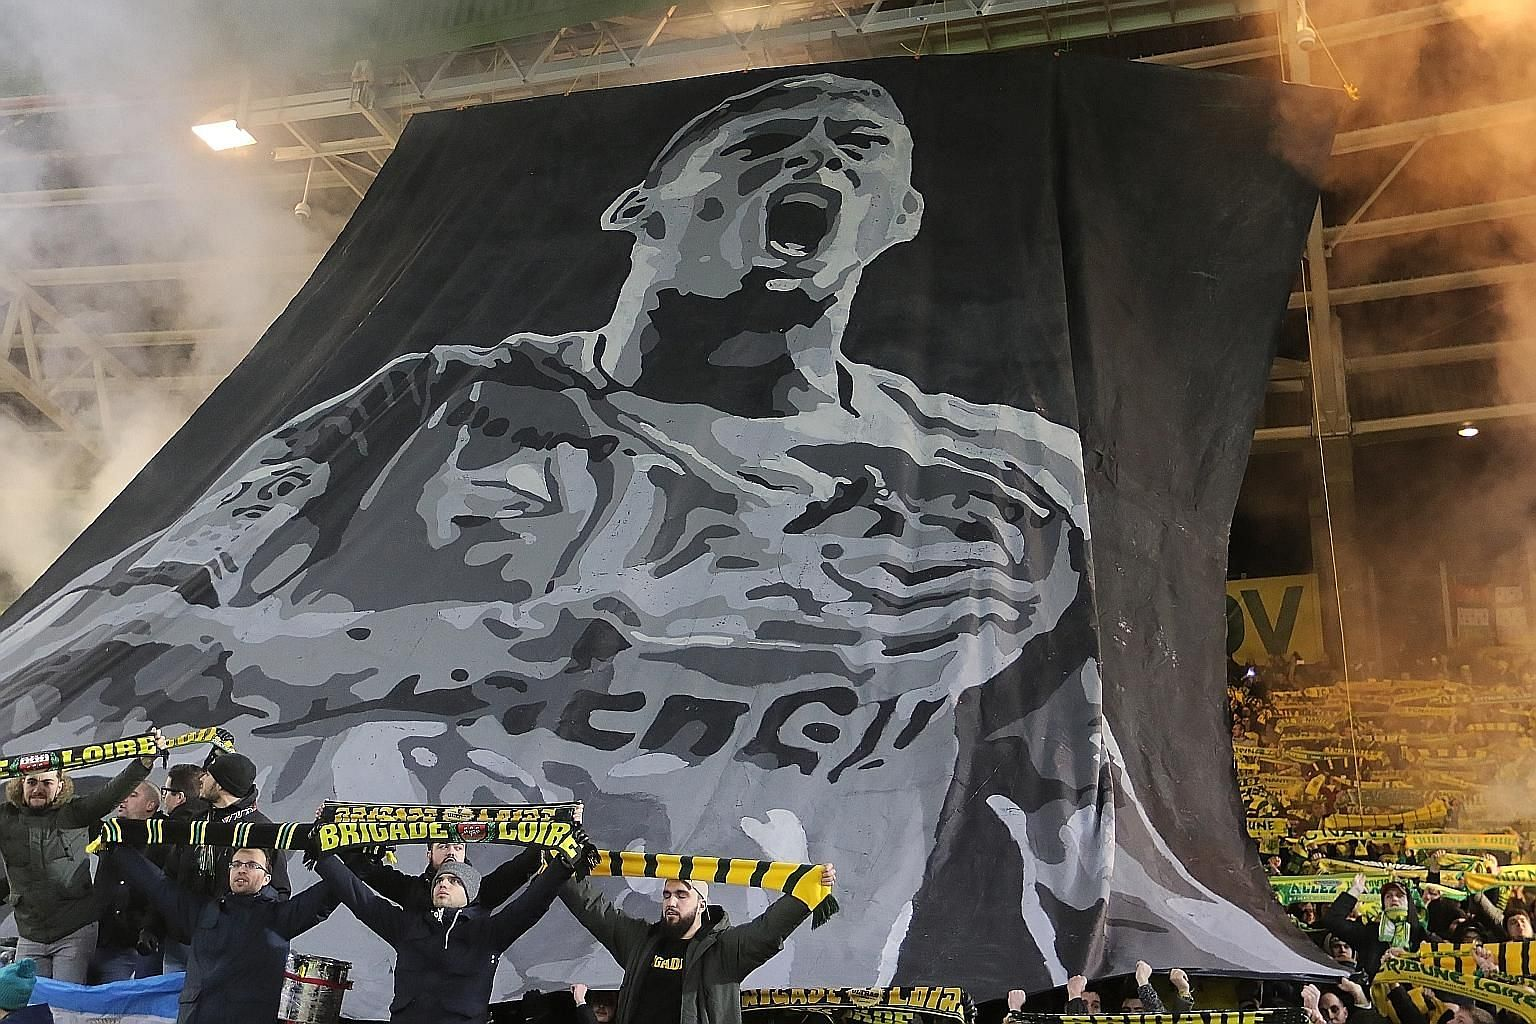 Nantes supporters displaying a banner in tribute to Emiliano Sala ahead of a French Ligue One match at the club's stadium last month. After his body was identified, there was also an outpouring of grief from fellow footballers, many of whom paid trib